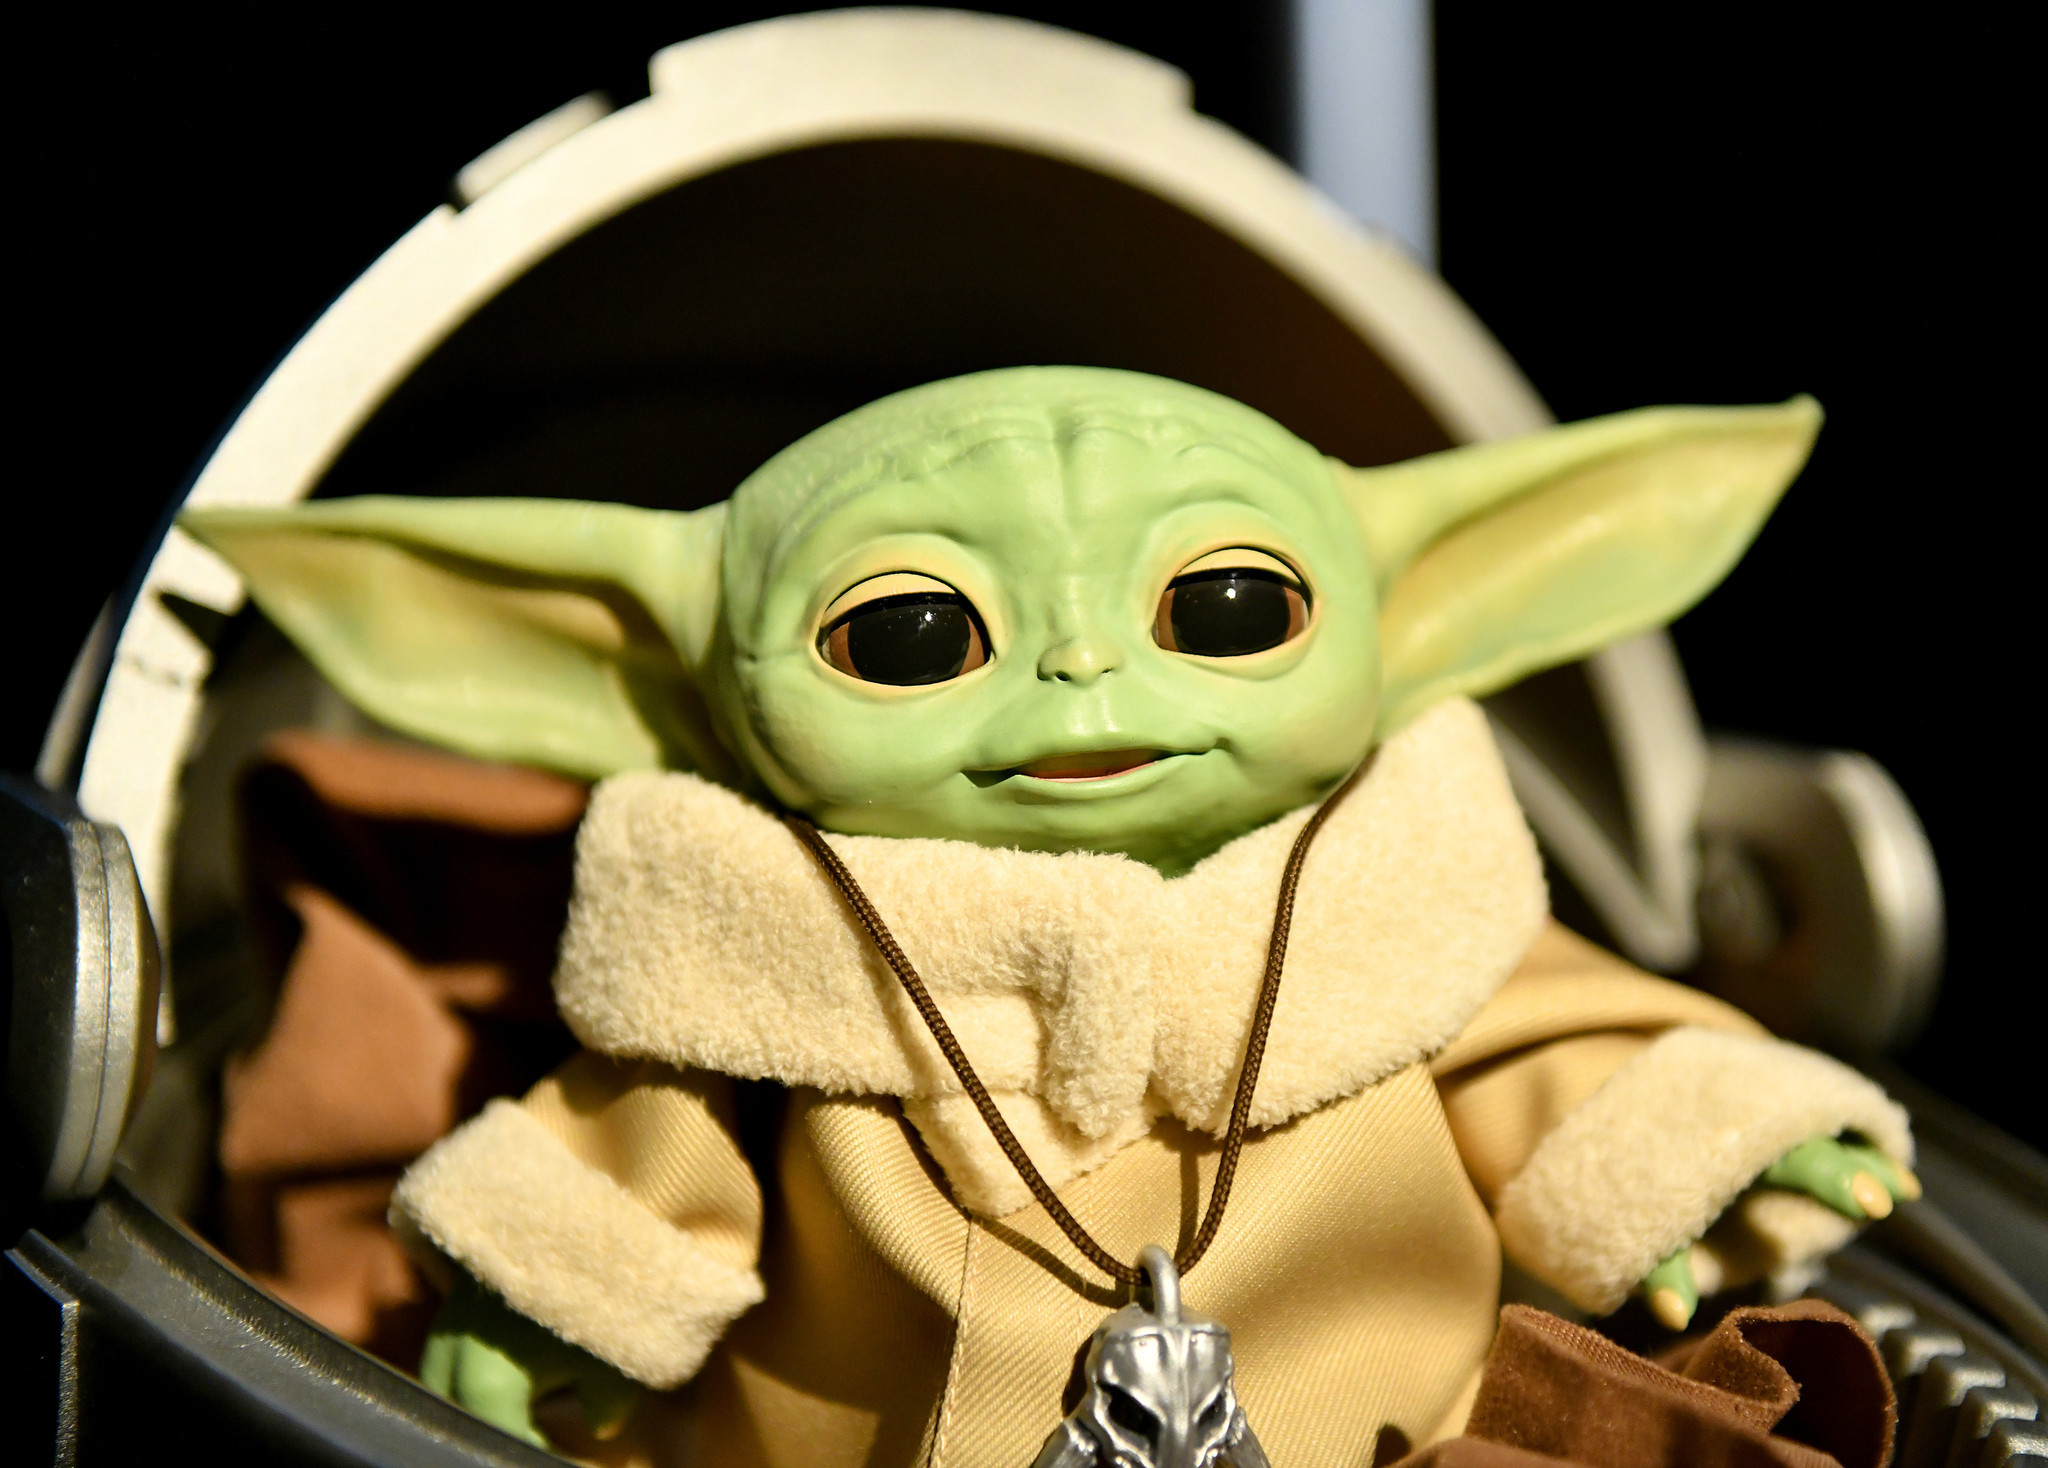 New 'Baby Yoda' toys to include animatronic 'The Child,' Legos, mini backpack, Operation game